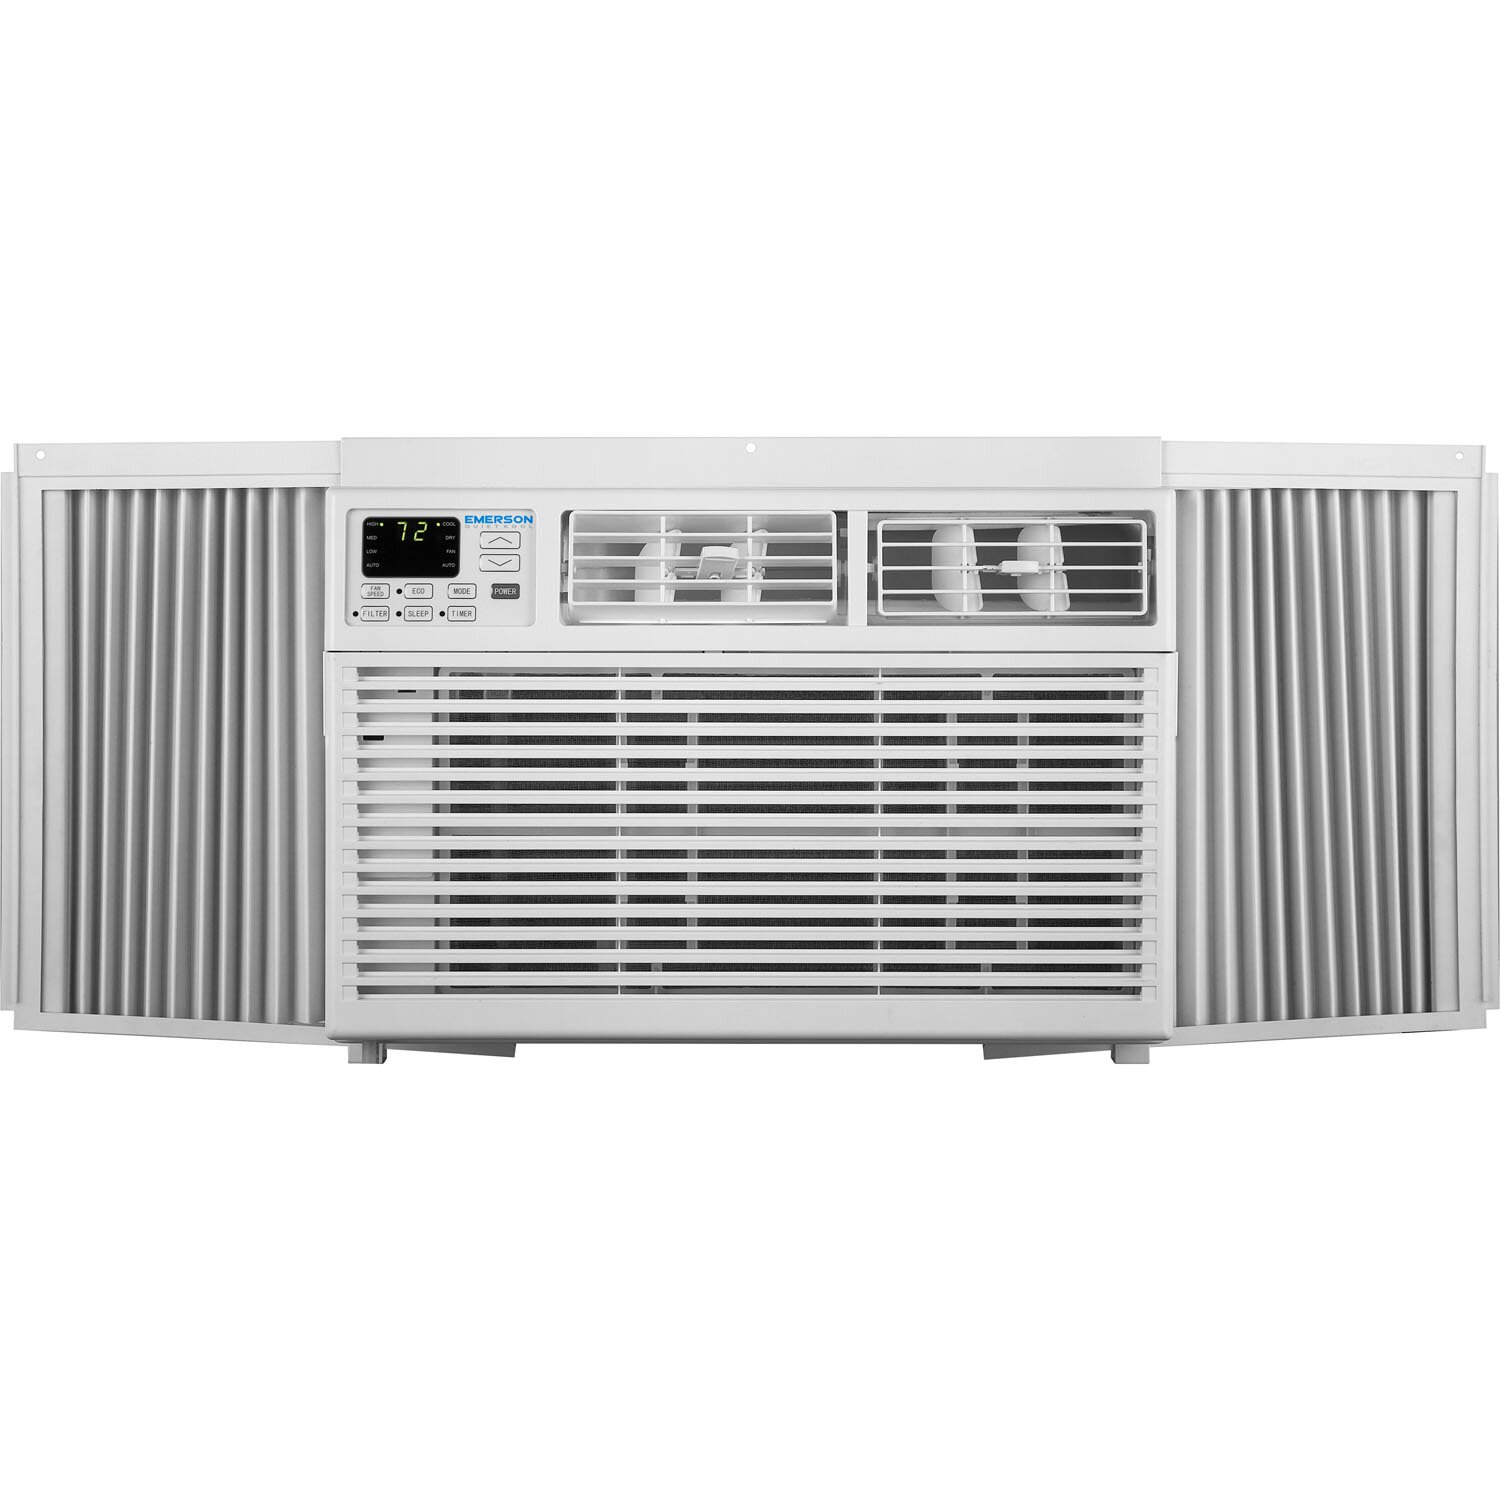 Emerson Quiet Kool Emerson Quiet Kool 6 000 Btu Window Air Conditioner With Remote Control